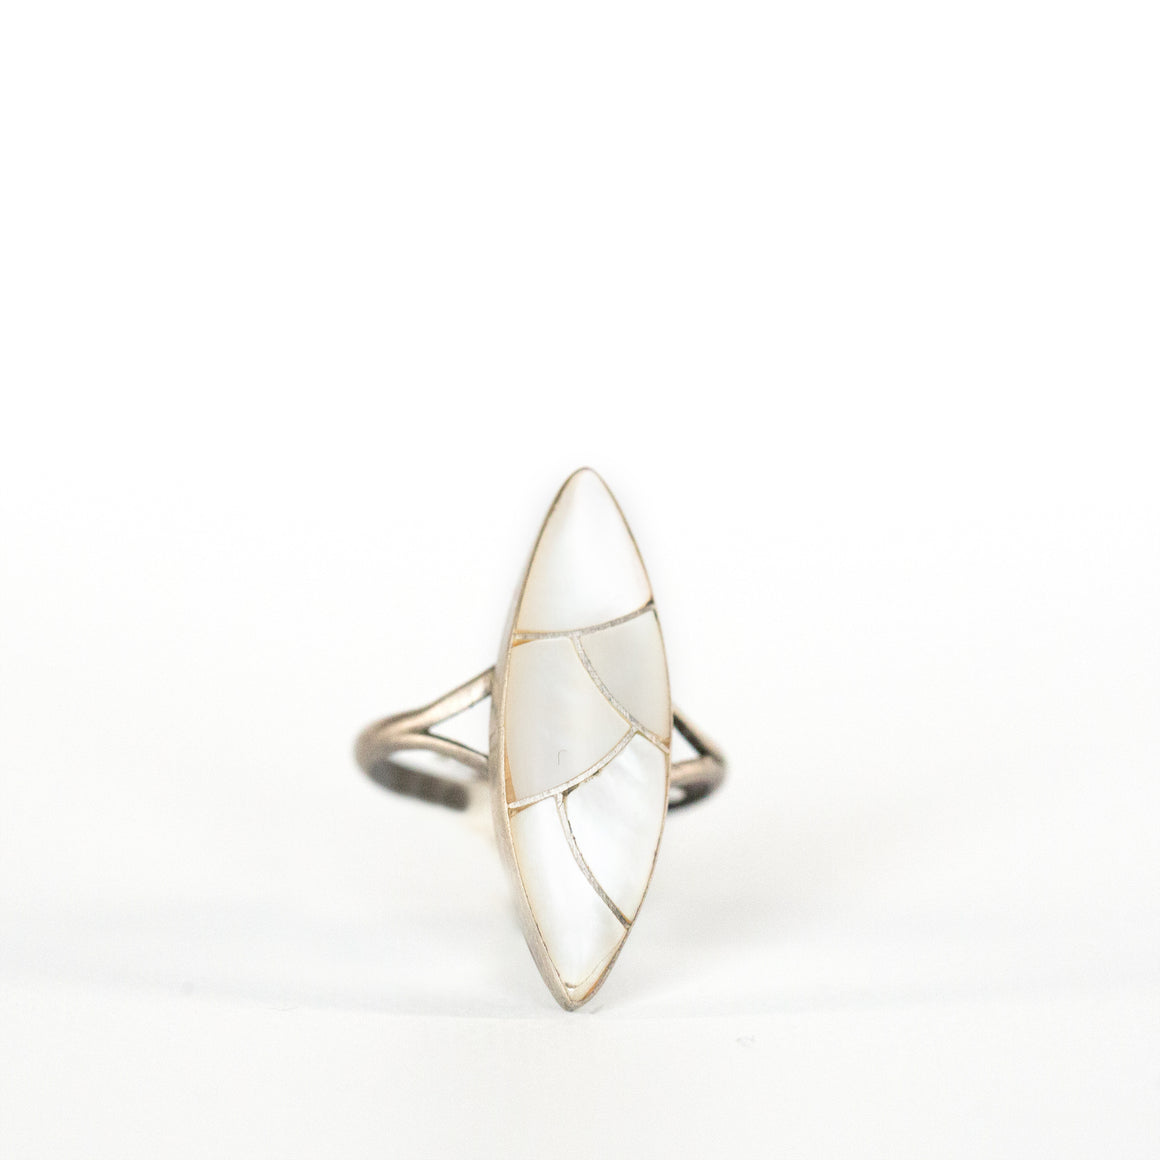 VINTAGE JEWELRY | ZUNI STERLING WHITE STONE RING (SIZE 4.75)